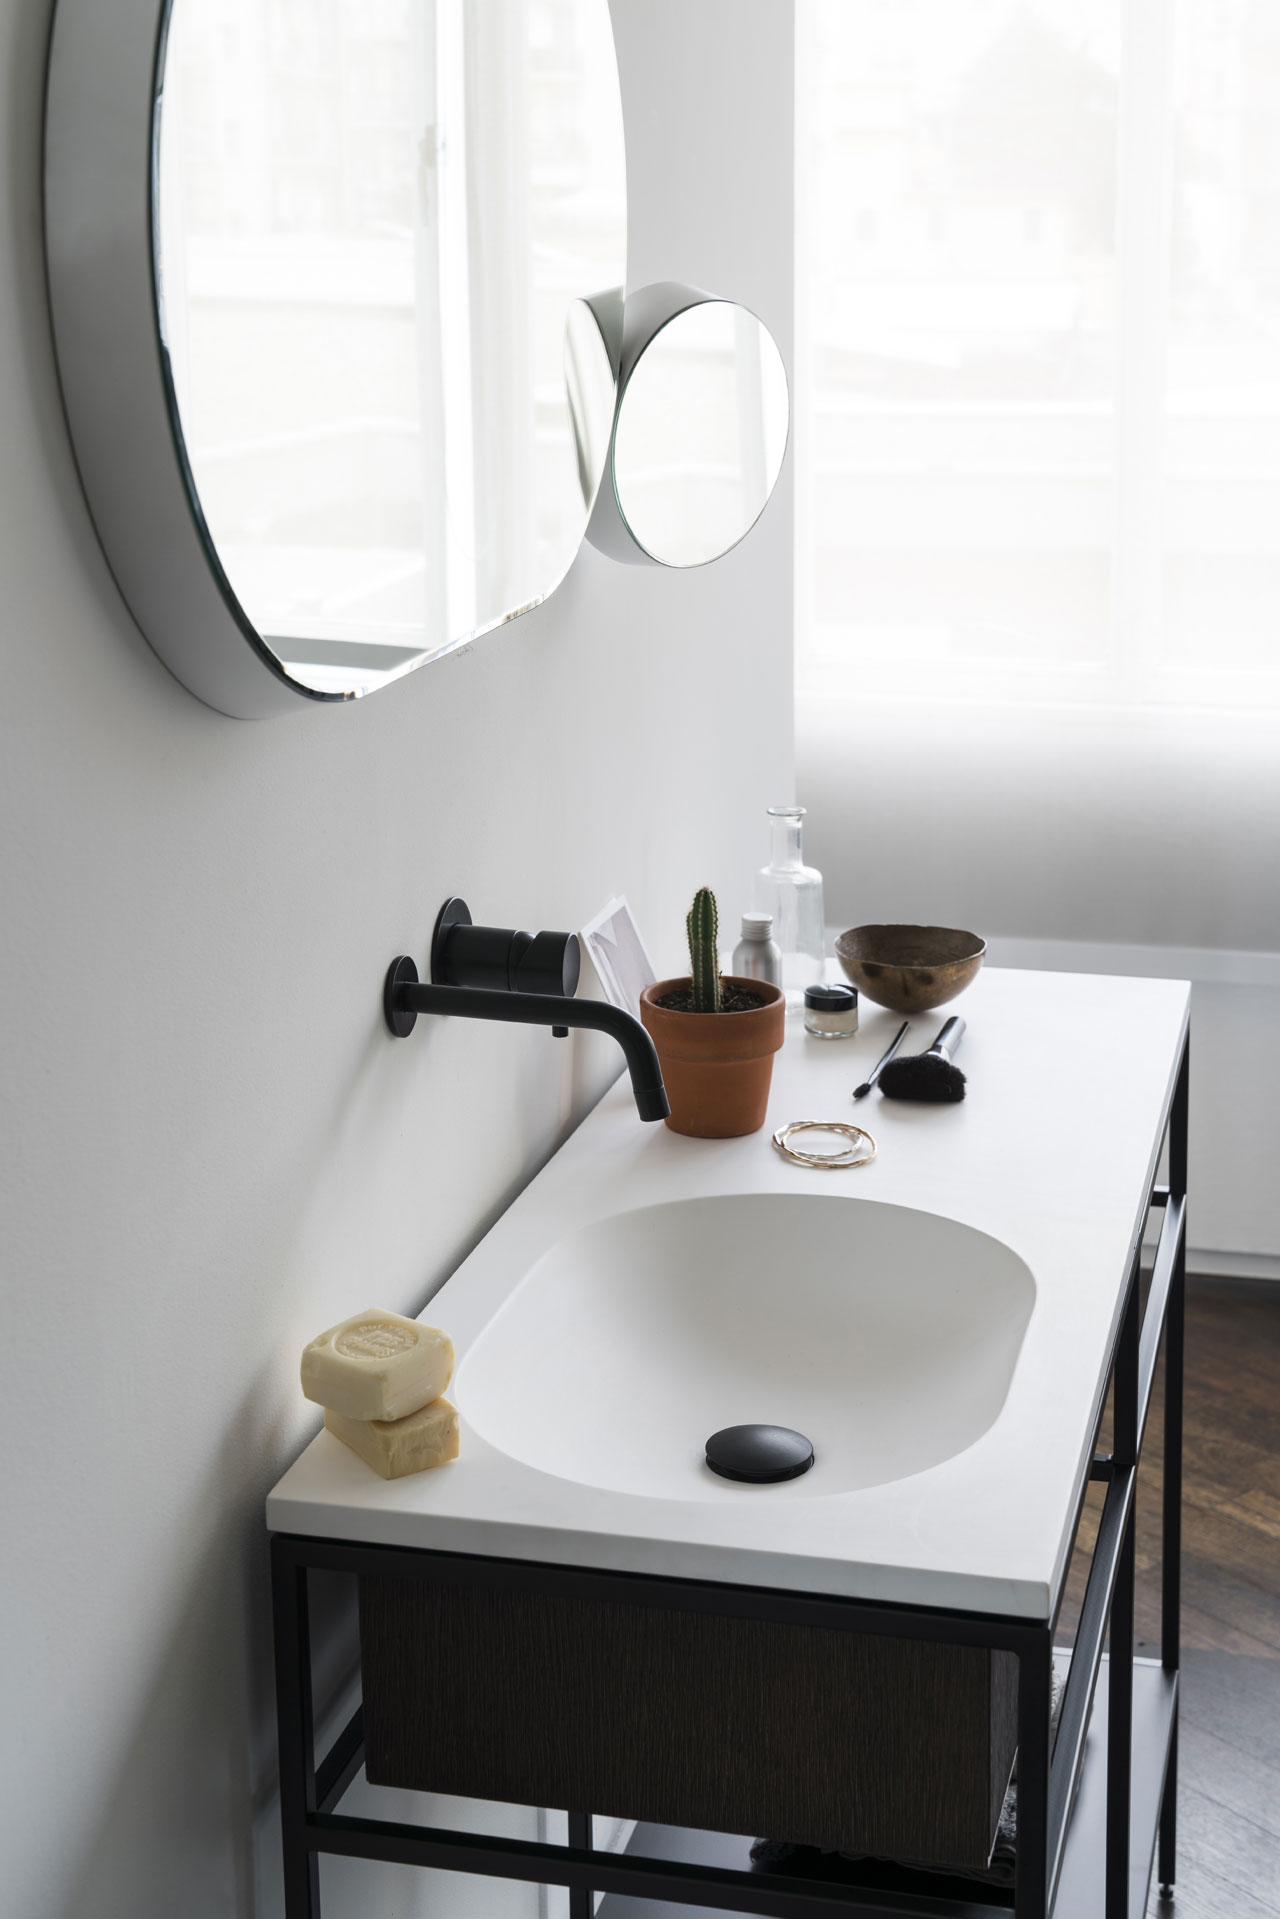 Limited edition Frame System made of Smoked oak and Navona travertine by Norm.Architects and Float & Gravity  bathroom mirrors by Samuel Wilkinson, both designed for Ex.t.